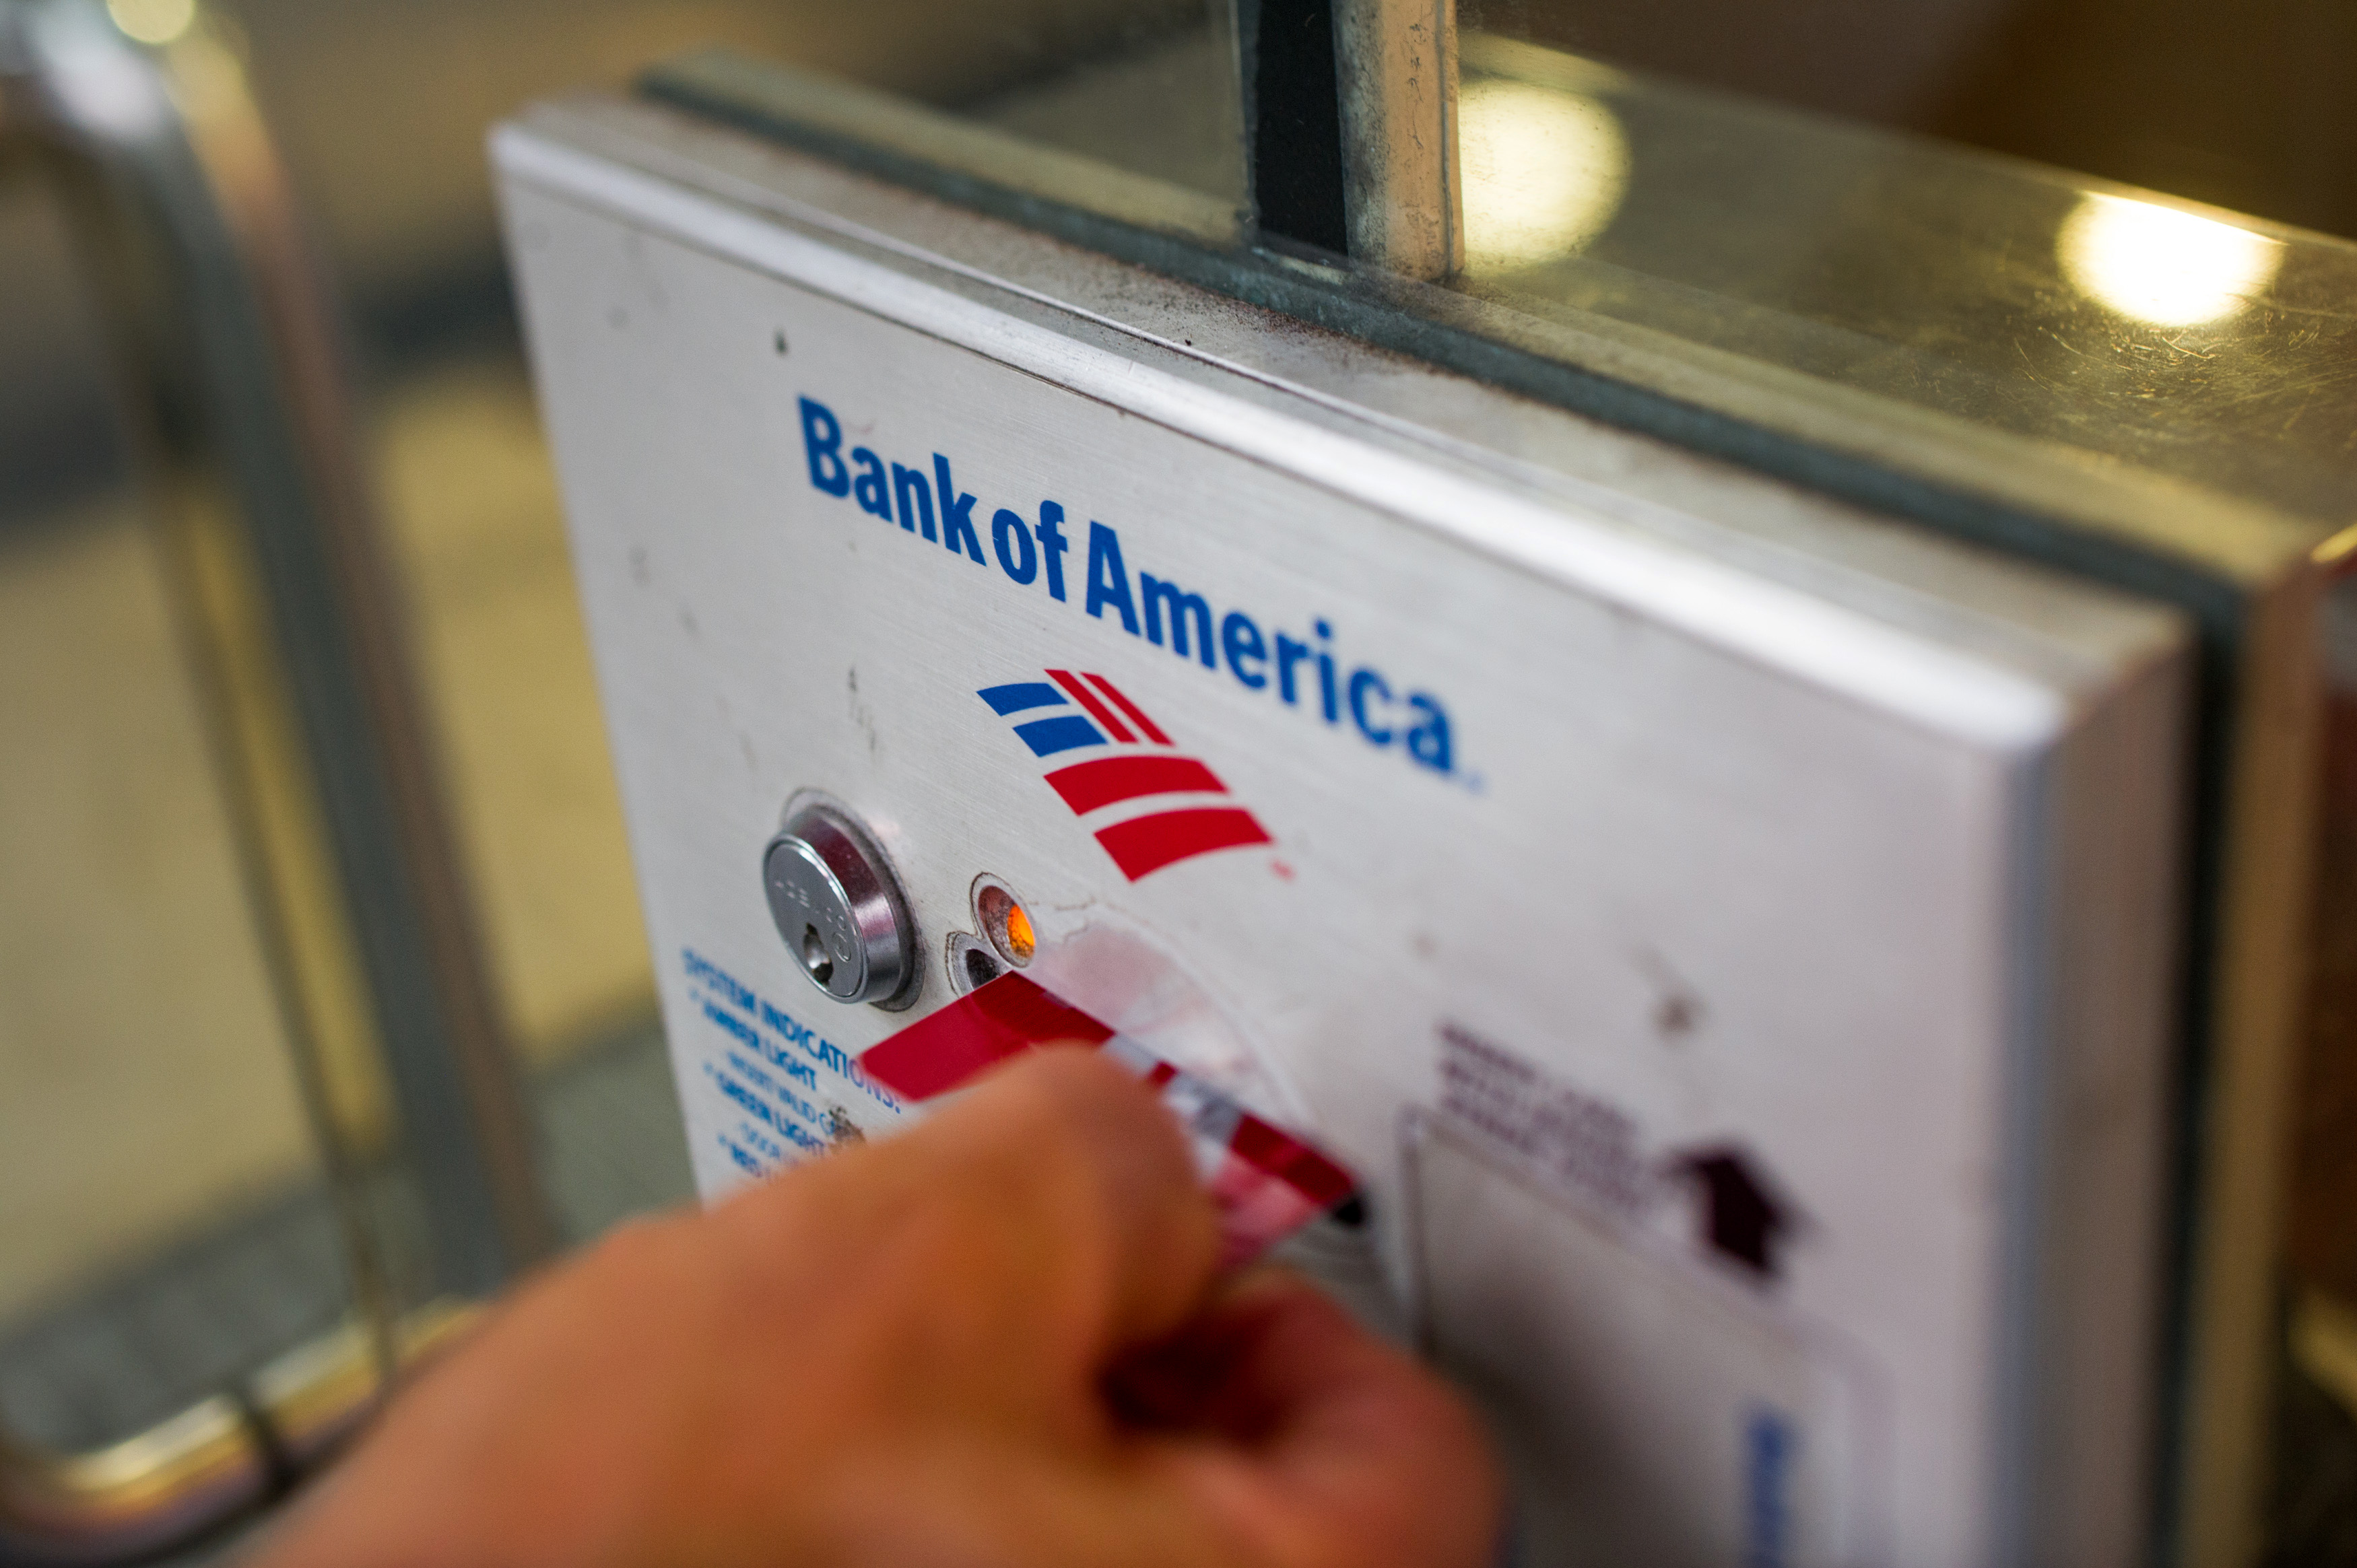 Bank Of America Rises As Firm Seeks $1.5 Billion In Construction Bank Exit